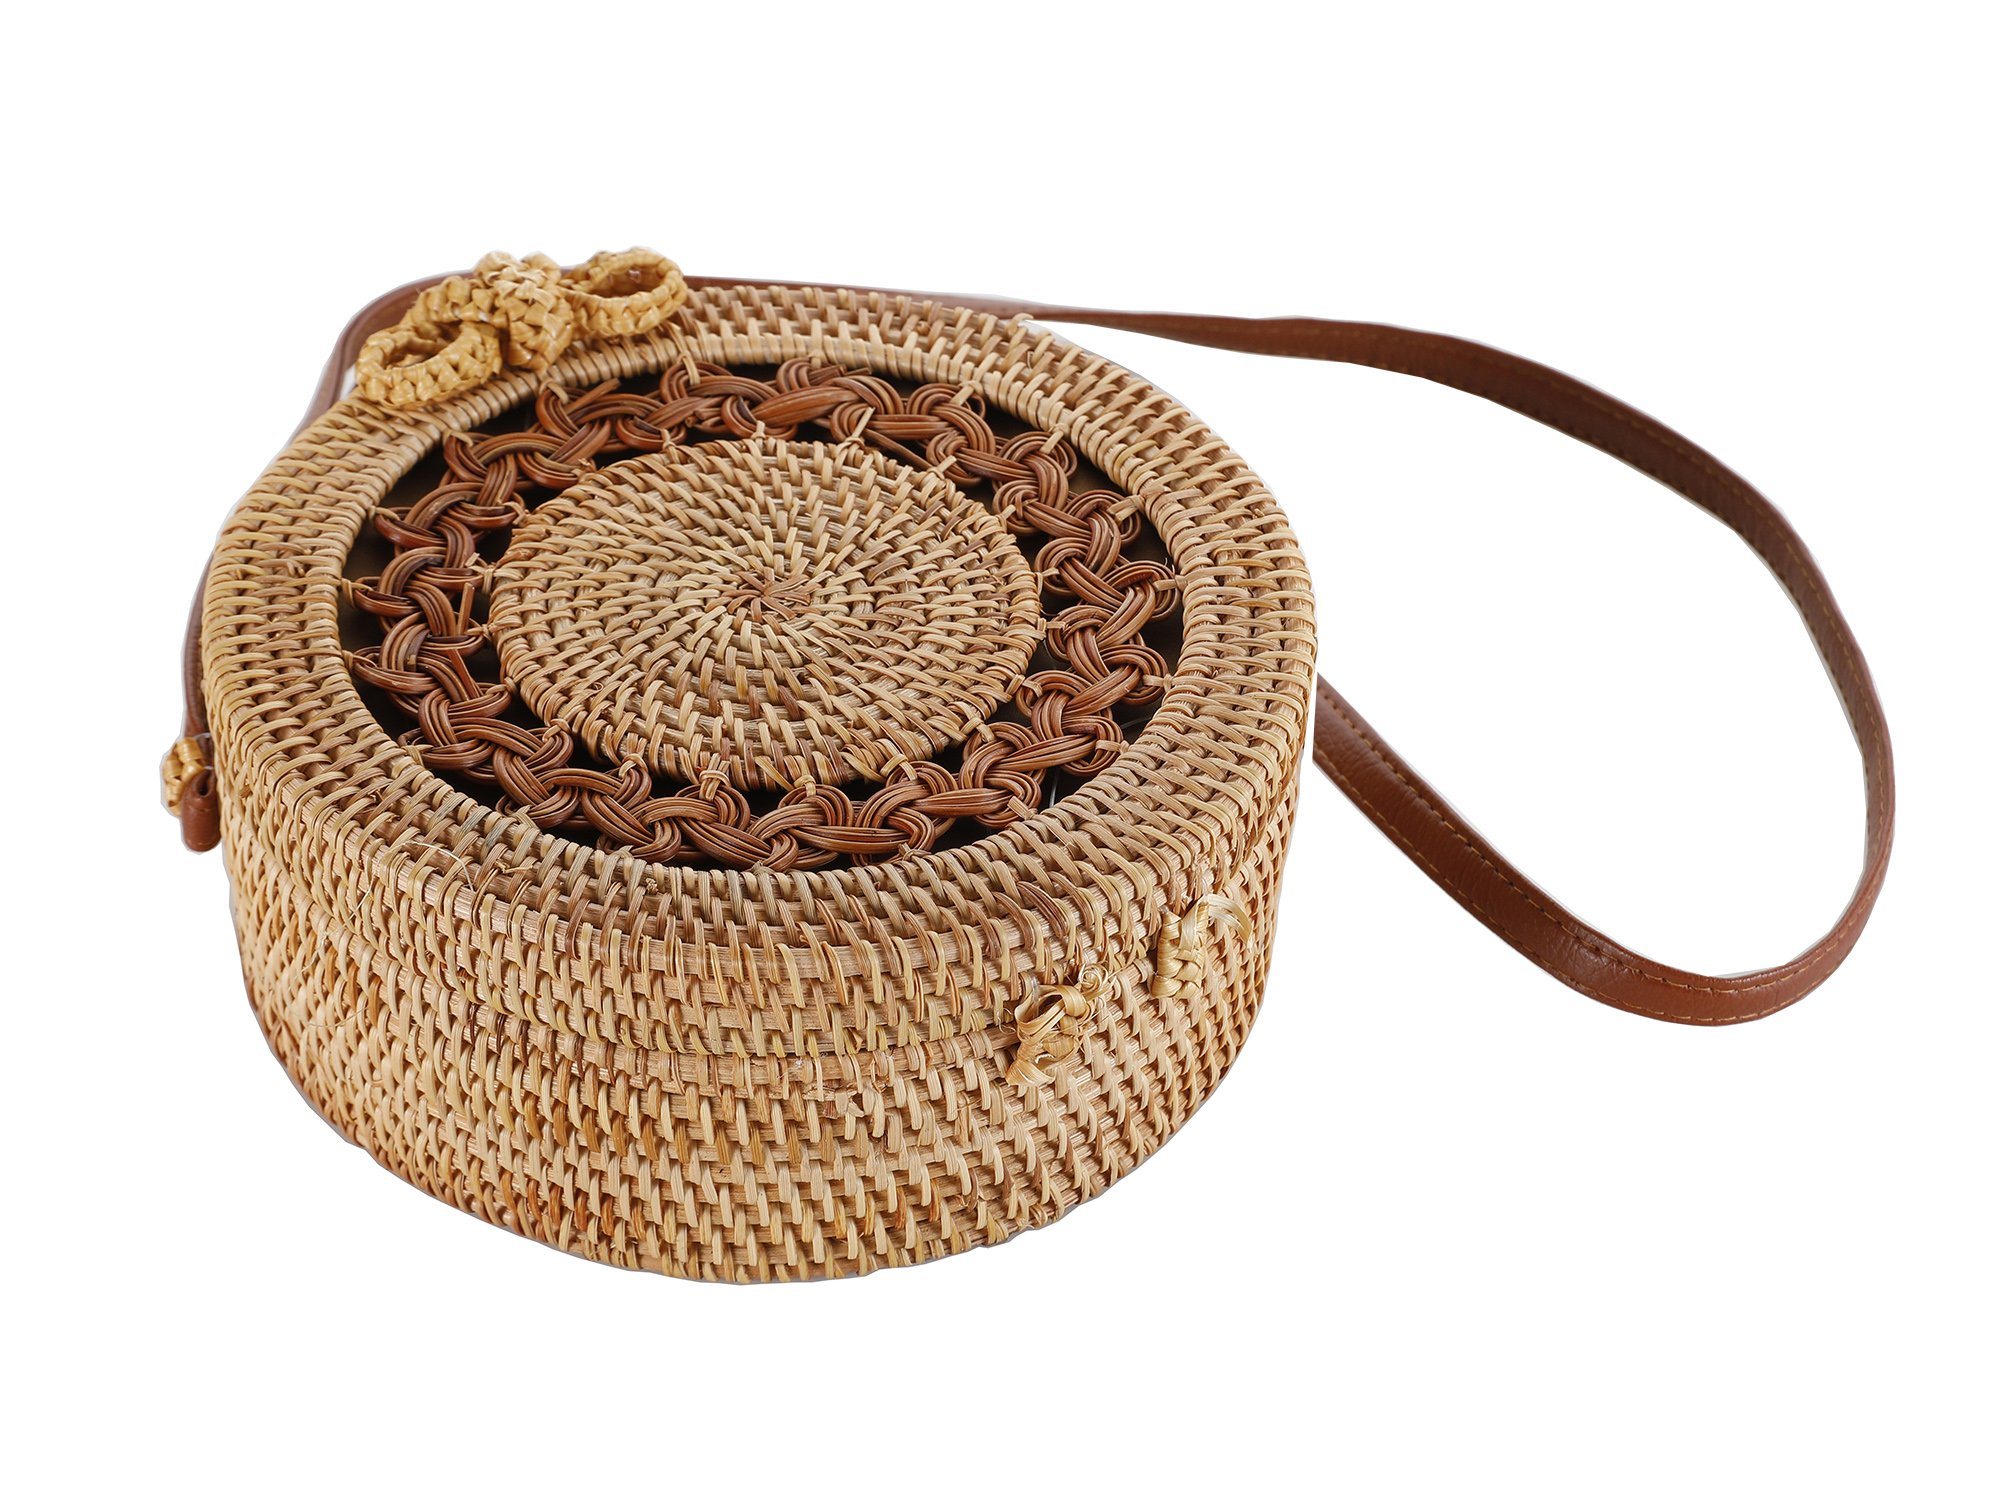 LE Round Woven Ata Rattan Bag with Bow Clasp (style 3-flower rattan bag)